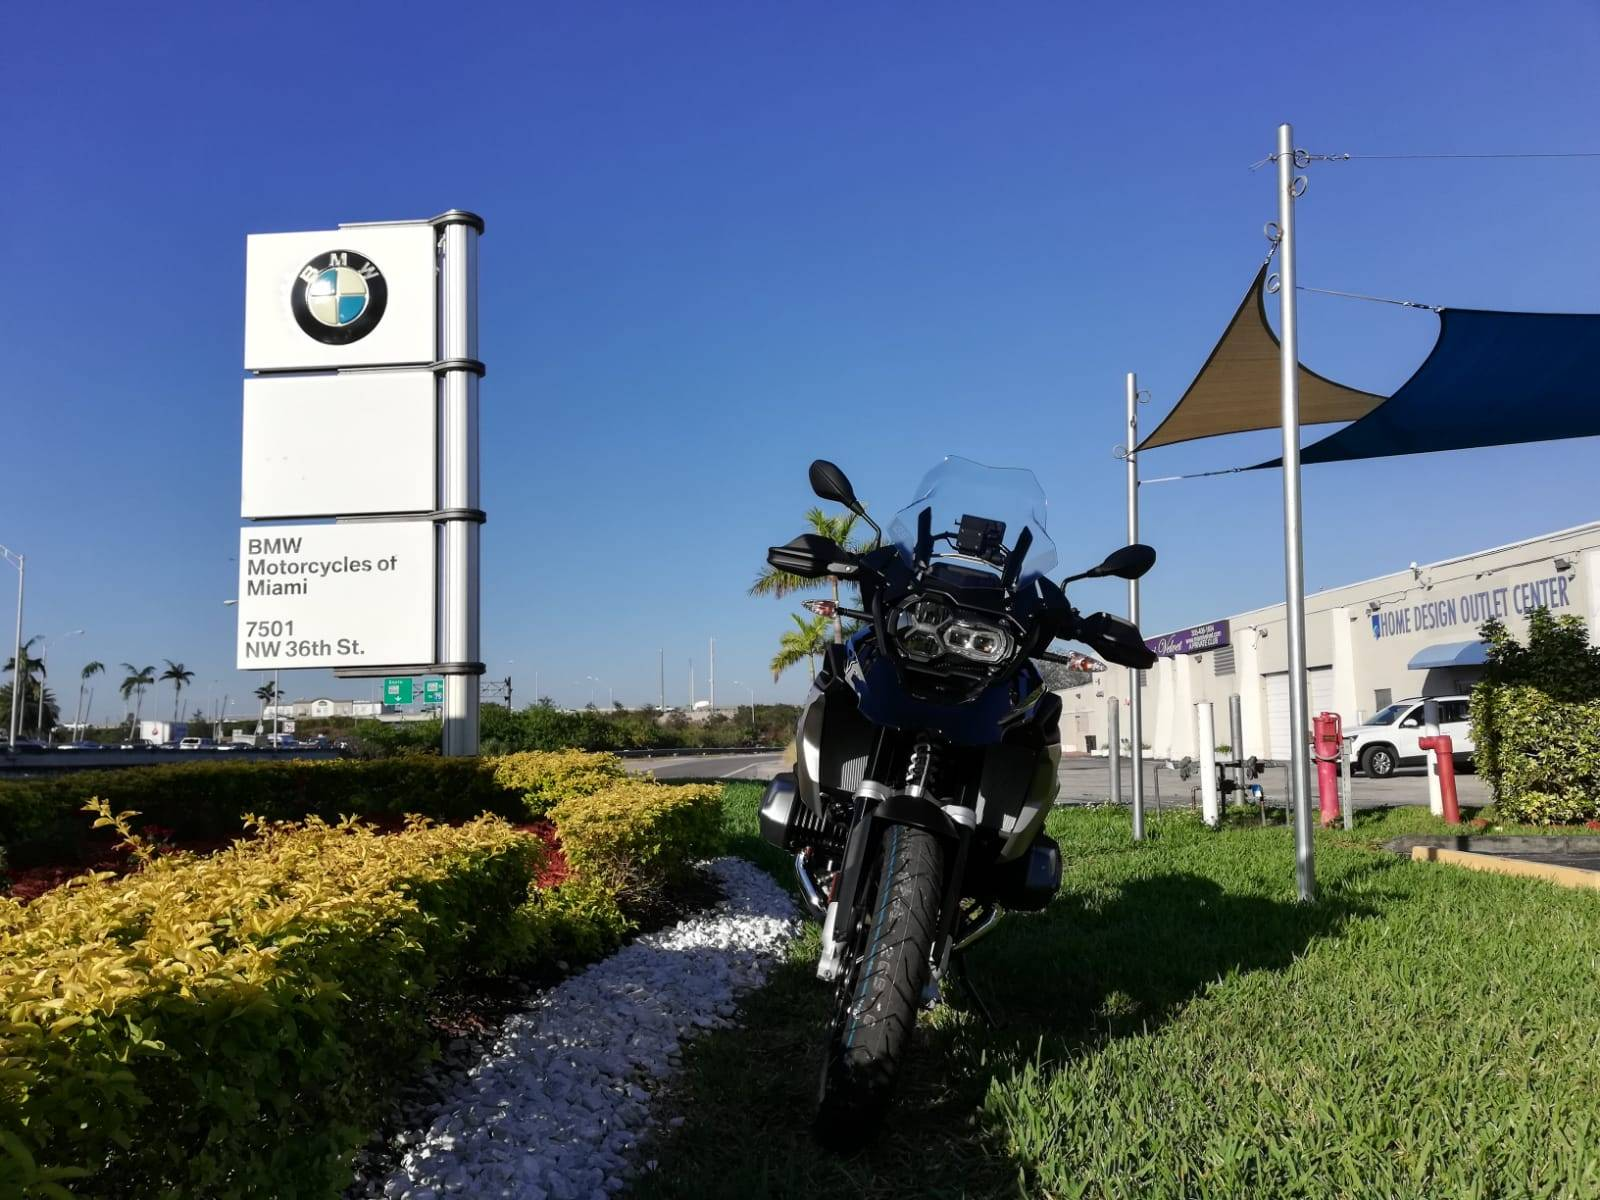 New 2019 BMW R 1250 GS for sale, BMW R 1250GS for sale, BMW Motorcycle GS, new BMW GS, Spirit of GS, BMW Motorcycles of Miami, Motorcycles of Miami, Motorcycles Miami, New Motorcycles, Used Motorcycles, pre-owned. #BMWMotorcyclesOfMiami #MotorcyclesOfMiami. - Photo 3